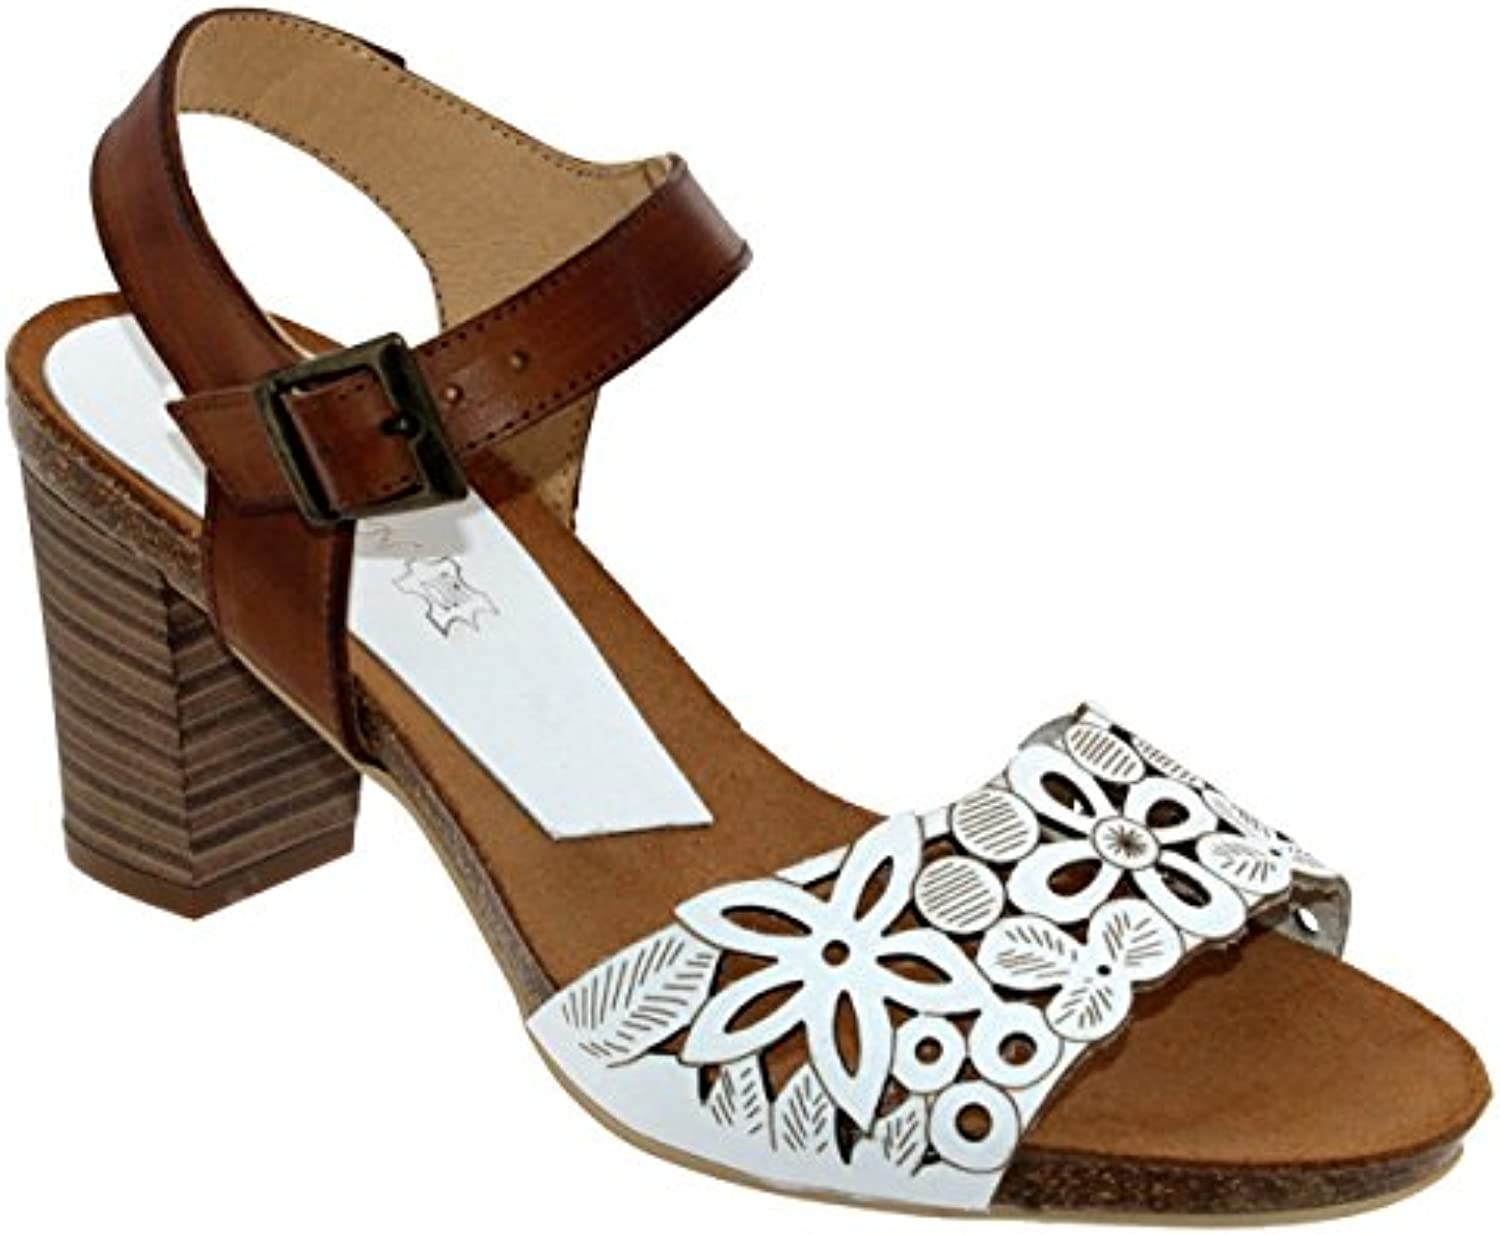 Xapatan Femme 8099, Femme Xapatan Nu-Pied Marron Lisse eac997 ... 9389551bef53